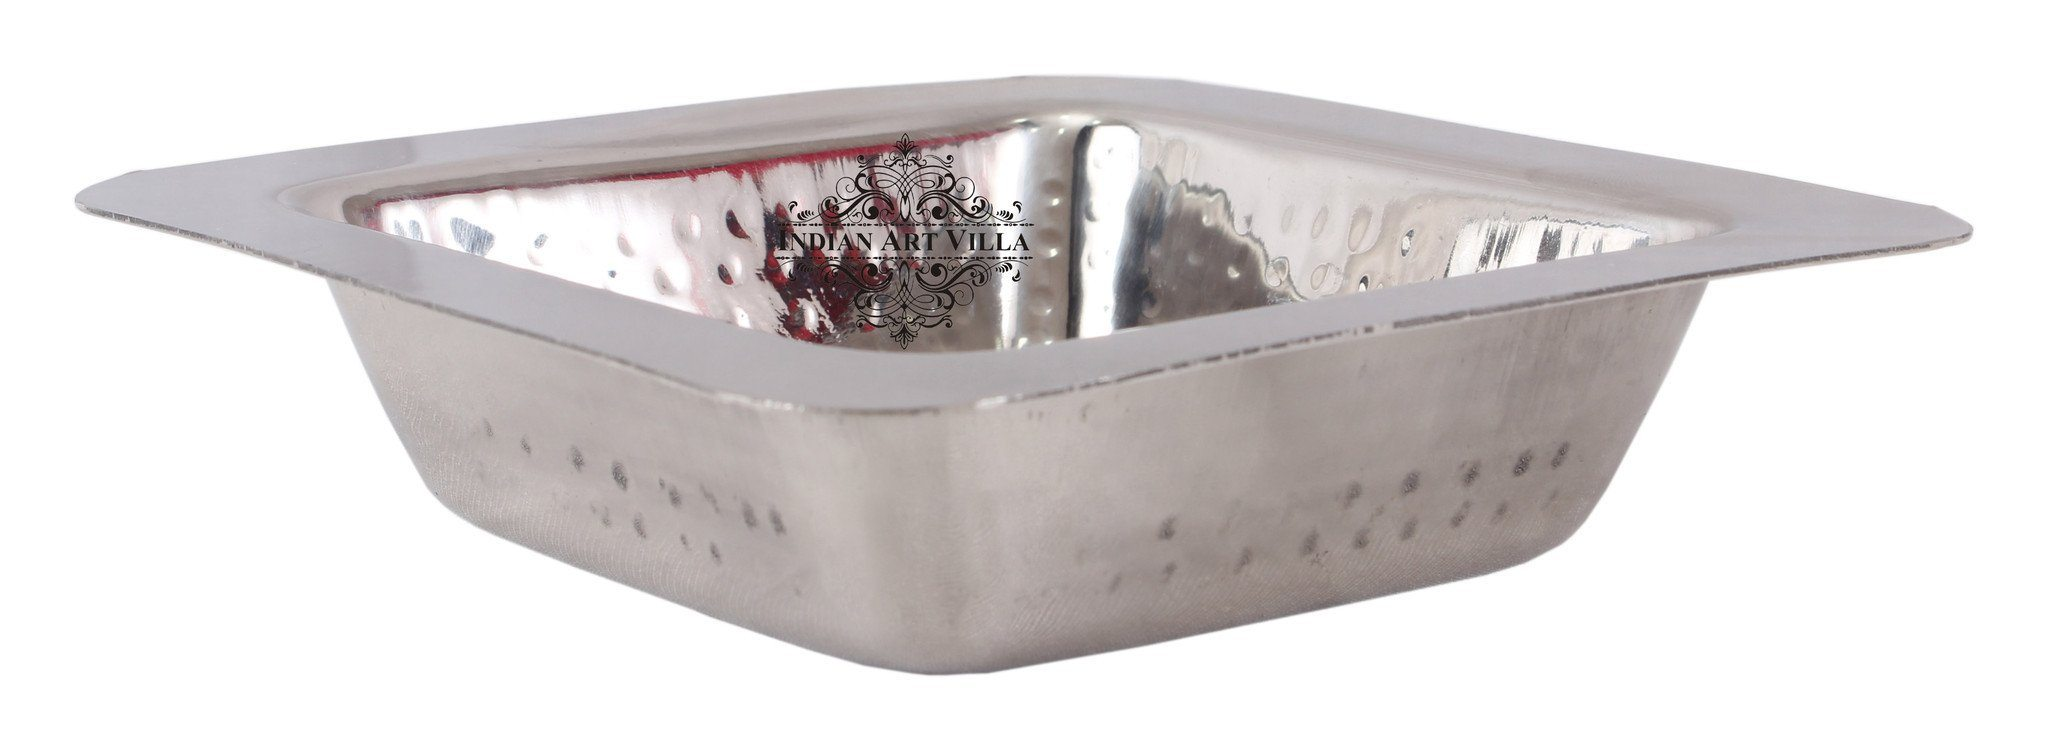 Steel Hammer Square Entree Dish Bowl